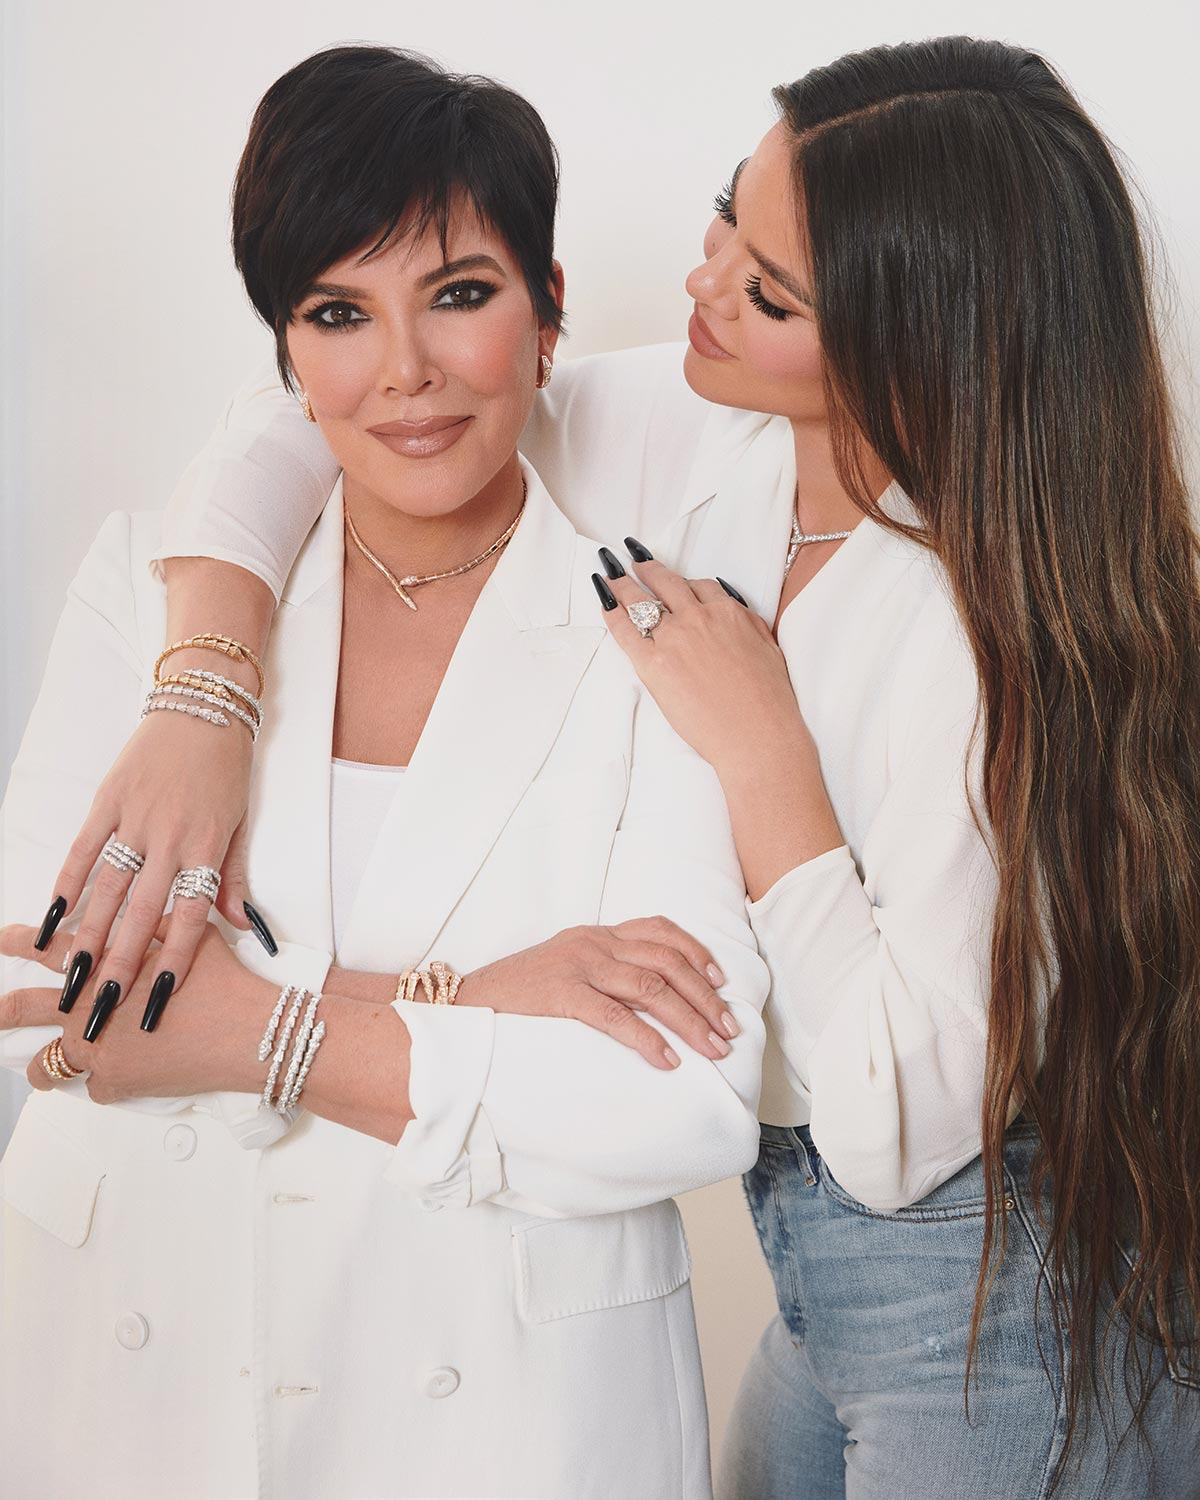 Khloe Kardashian  and Kris Jenner celebrate Mother's Day with BVLGARI in iconic Serpenti Viper jewelry.